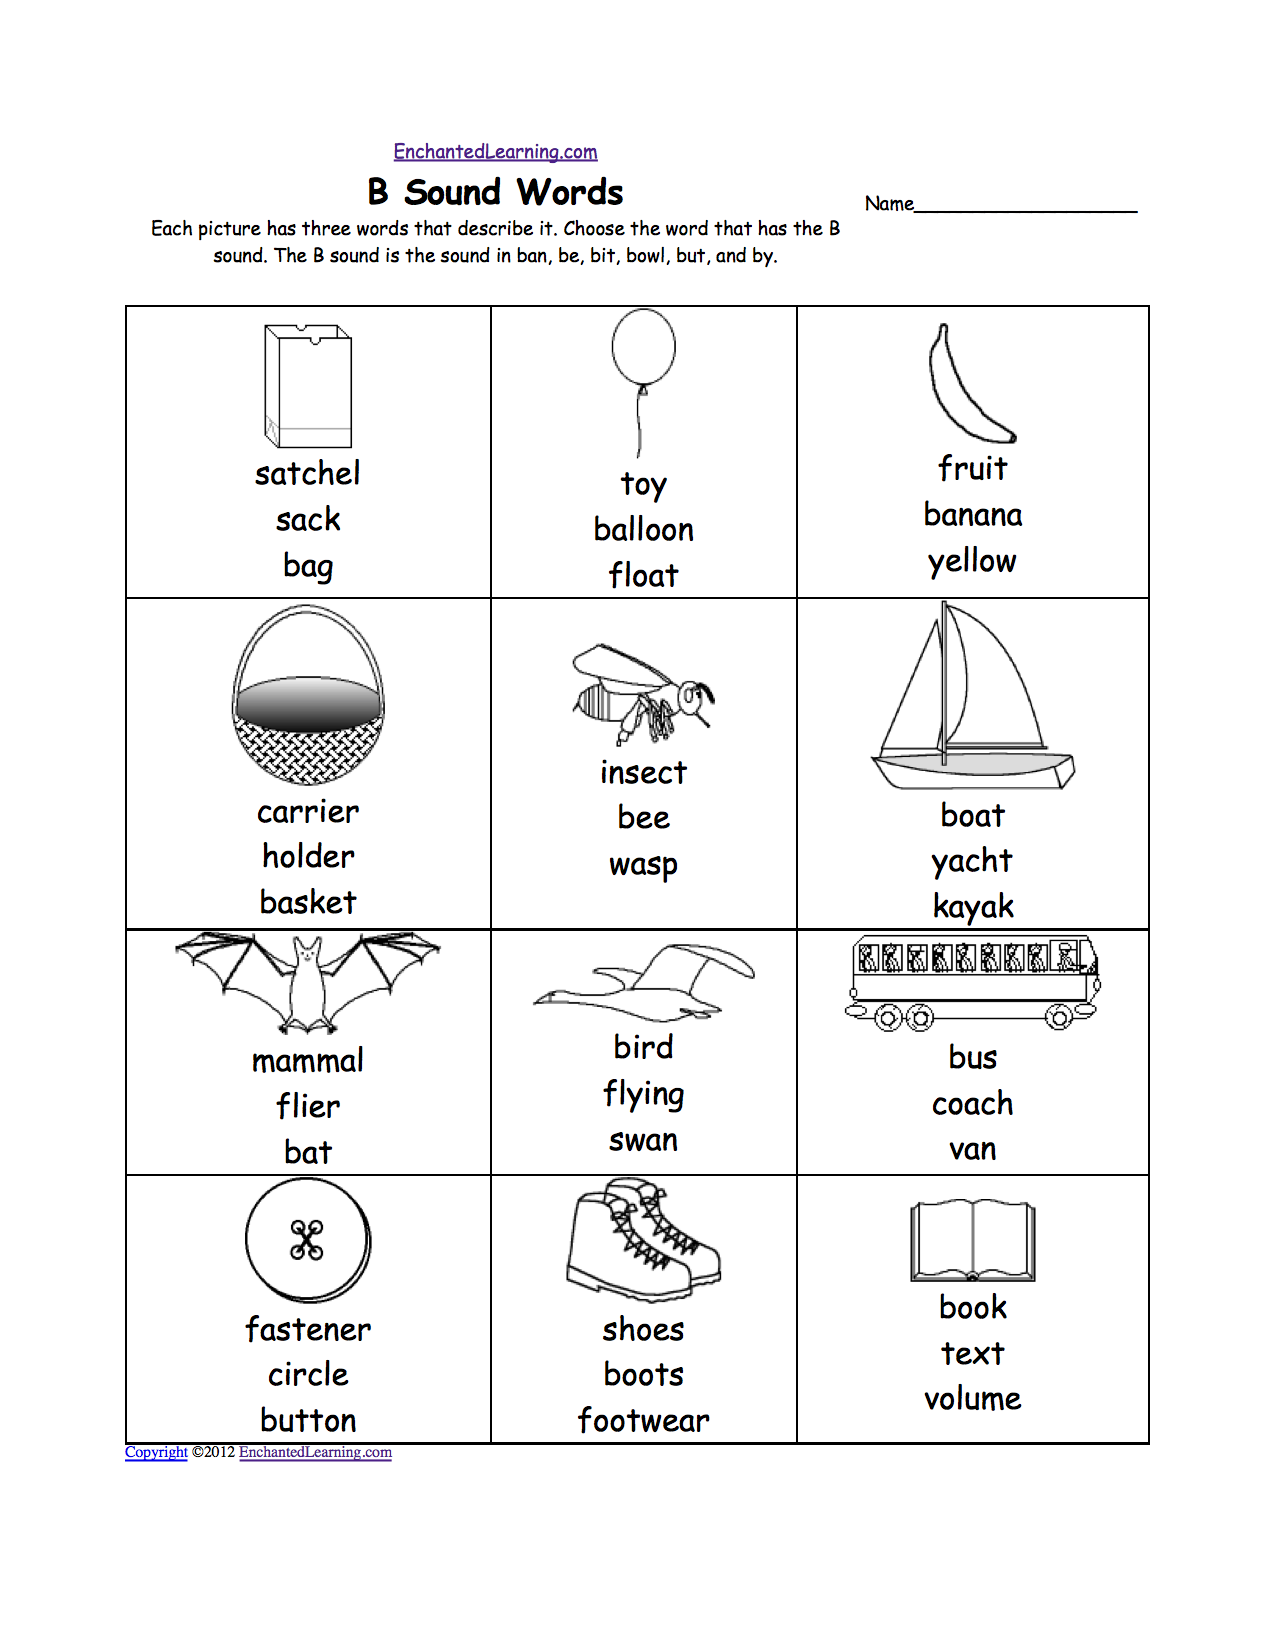 Weirdmailus  Nice Phonics Worksheets Multiple Choice Worksheets To Print  With Exquisite Quotbquot Sound Phonics Worksheet Multiple Choice Each Picture Has Three Words That Describe It Choose The Word That Has A Quotbquot Sound The Quotbquot Sound Is The Sound  With Endearing Mole Worksheet Also Solving Trig Equations Worksheet In Addition Long A Worksheets And Fourth Grade Worksheets As Well As Parts Of A Microscope Worksheet Answers Additionally Skills Worksheet Active Reading From Enchantedlearningcom With Weirdmailus  Exquisite Phonics Worksheets Multiple Choice Worksheets To Print  With Endearing Quotbquot Sound Phonics Worksheet Multiple Choice Each Picture Has Three Words That Describe It Choose The Word That Has A Quotbquot Sound The Quotbquot Sound Is The Sound  And Nice Mole Worksheet Also Solving Trig Equations Worksheet In Addition Long A Worksheets From Enchantedlearningcom